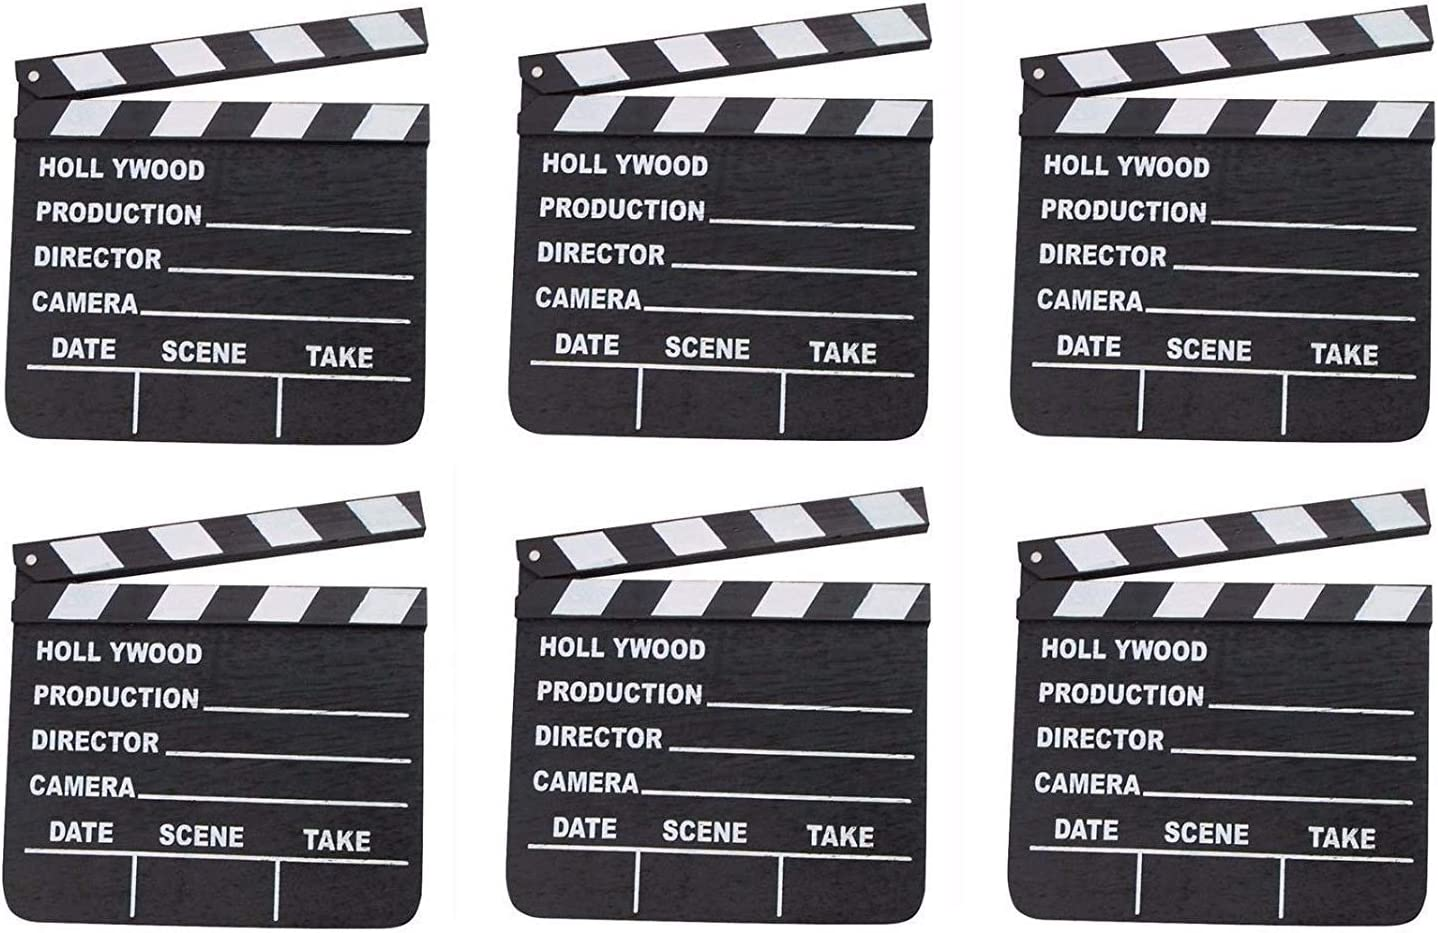 Rhode Island Novelty 7 Inchx 8 Inch Hollywood Movie Clapboards Set of 6